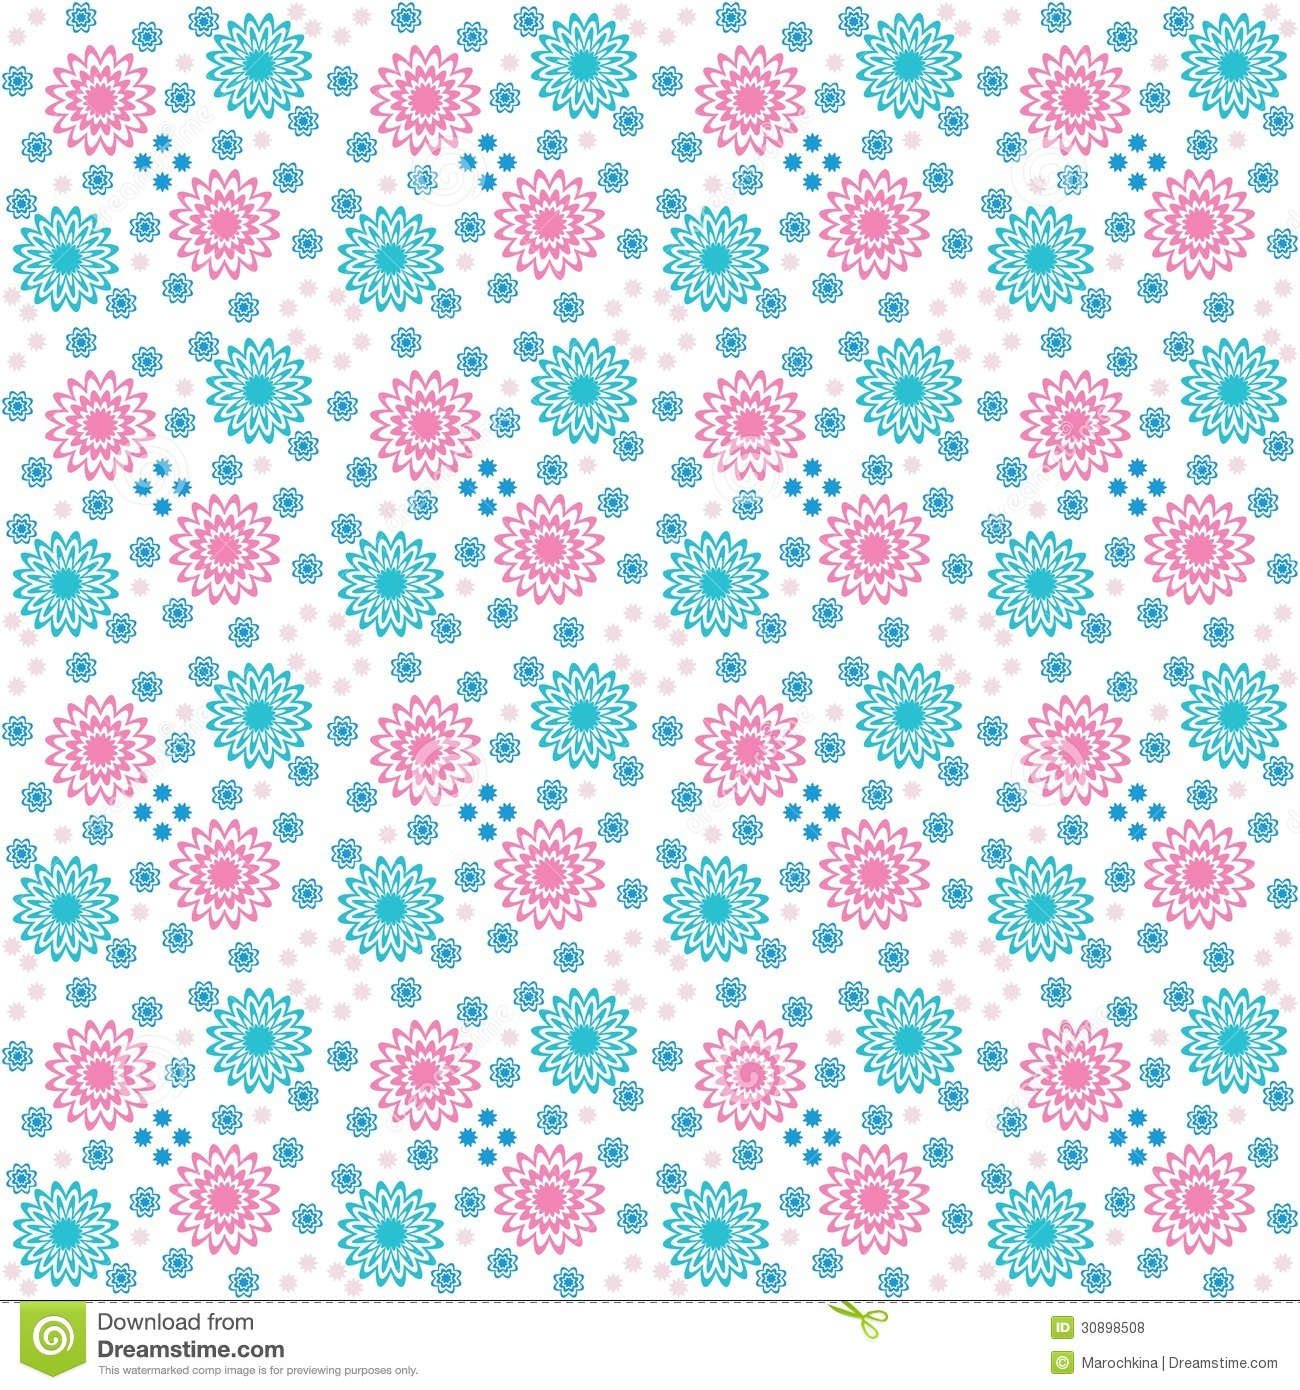 Papel estampado para imprimir gratis imagui for Papel decorativo infantil